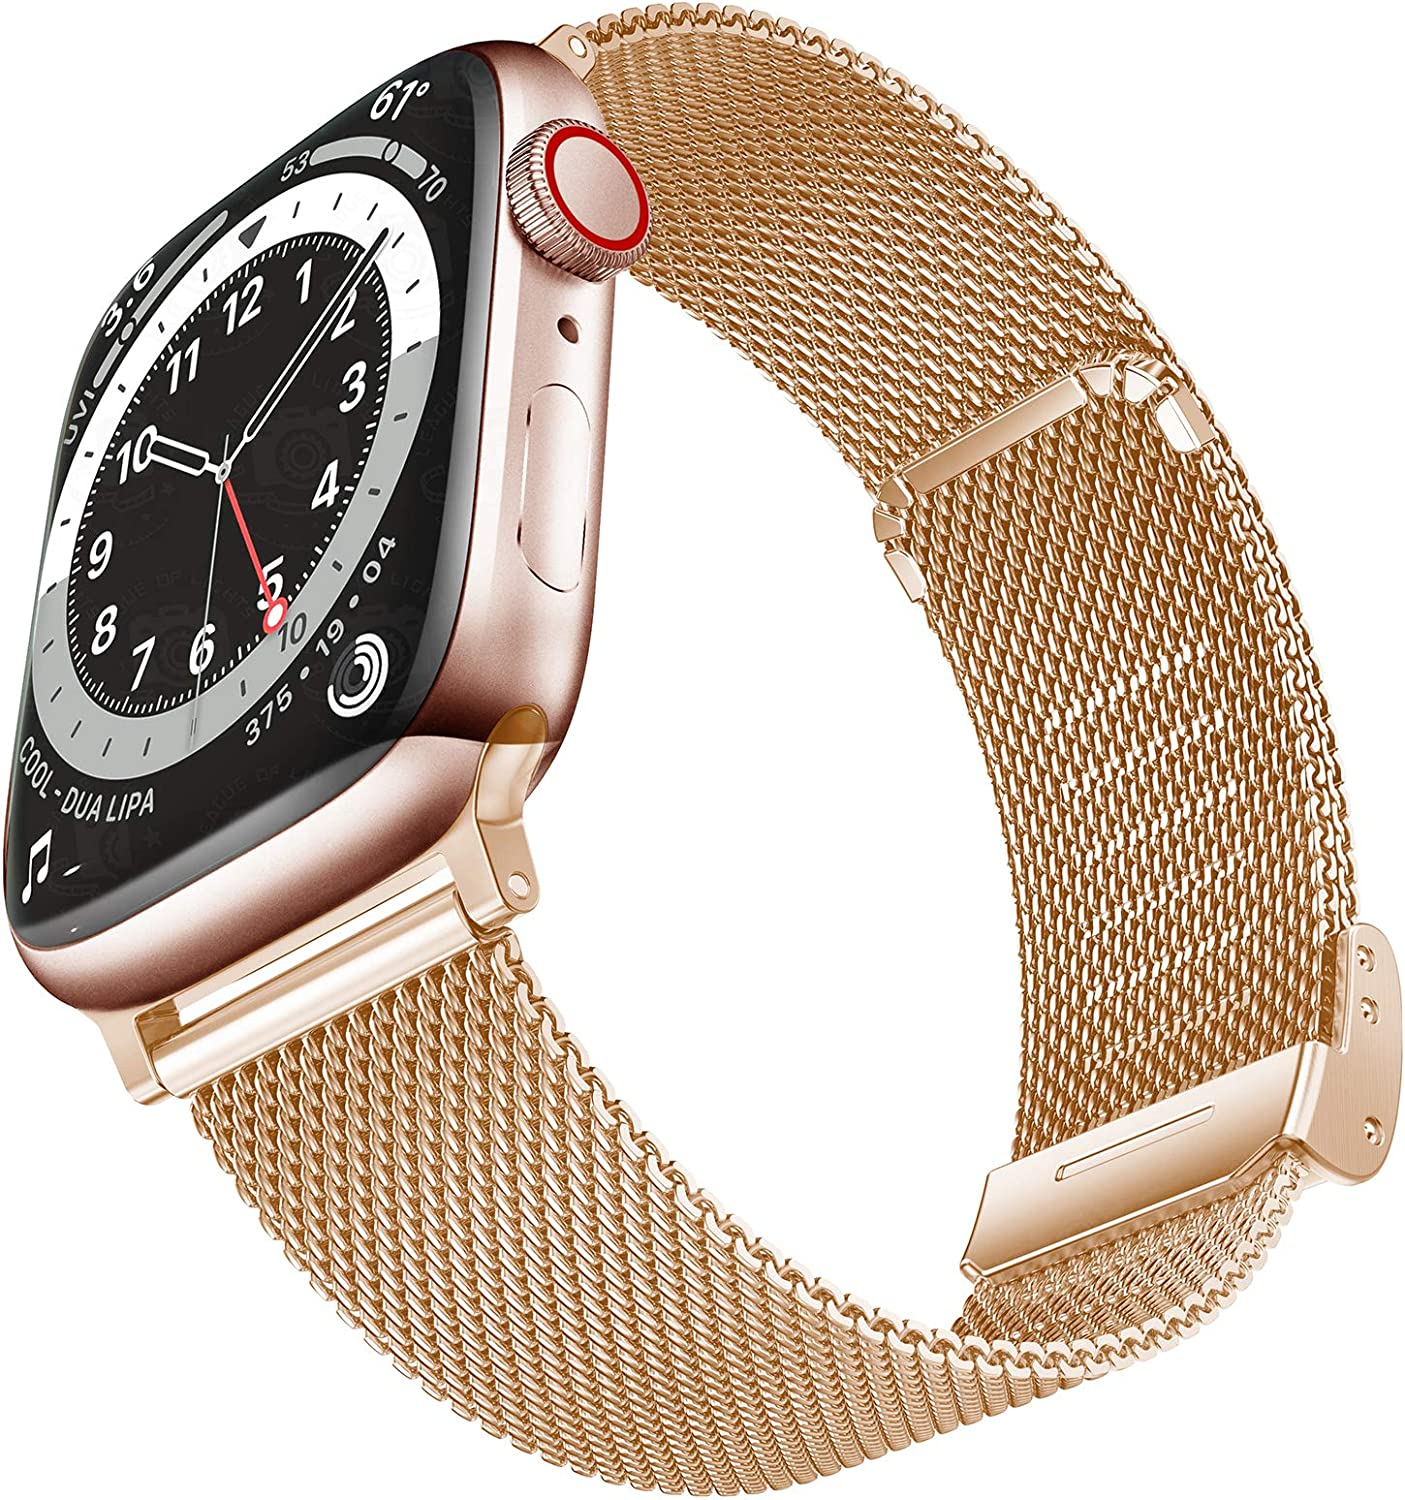 Geoumy Bands Compatible with Apple Watch Band 38mm 40mm, Stainless Steel Milanese Mesh Loop Replacement Men Women Strap for iWatch Series SE/6/5/4/3/2/1,Rose Gold